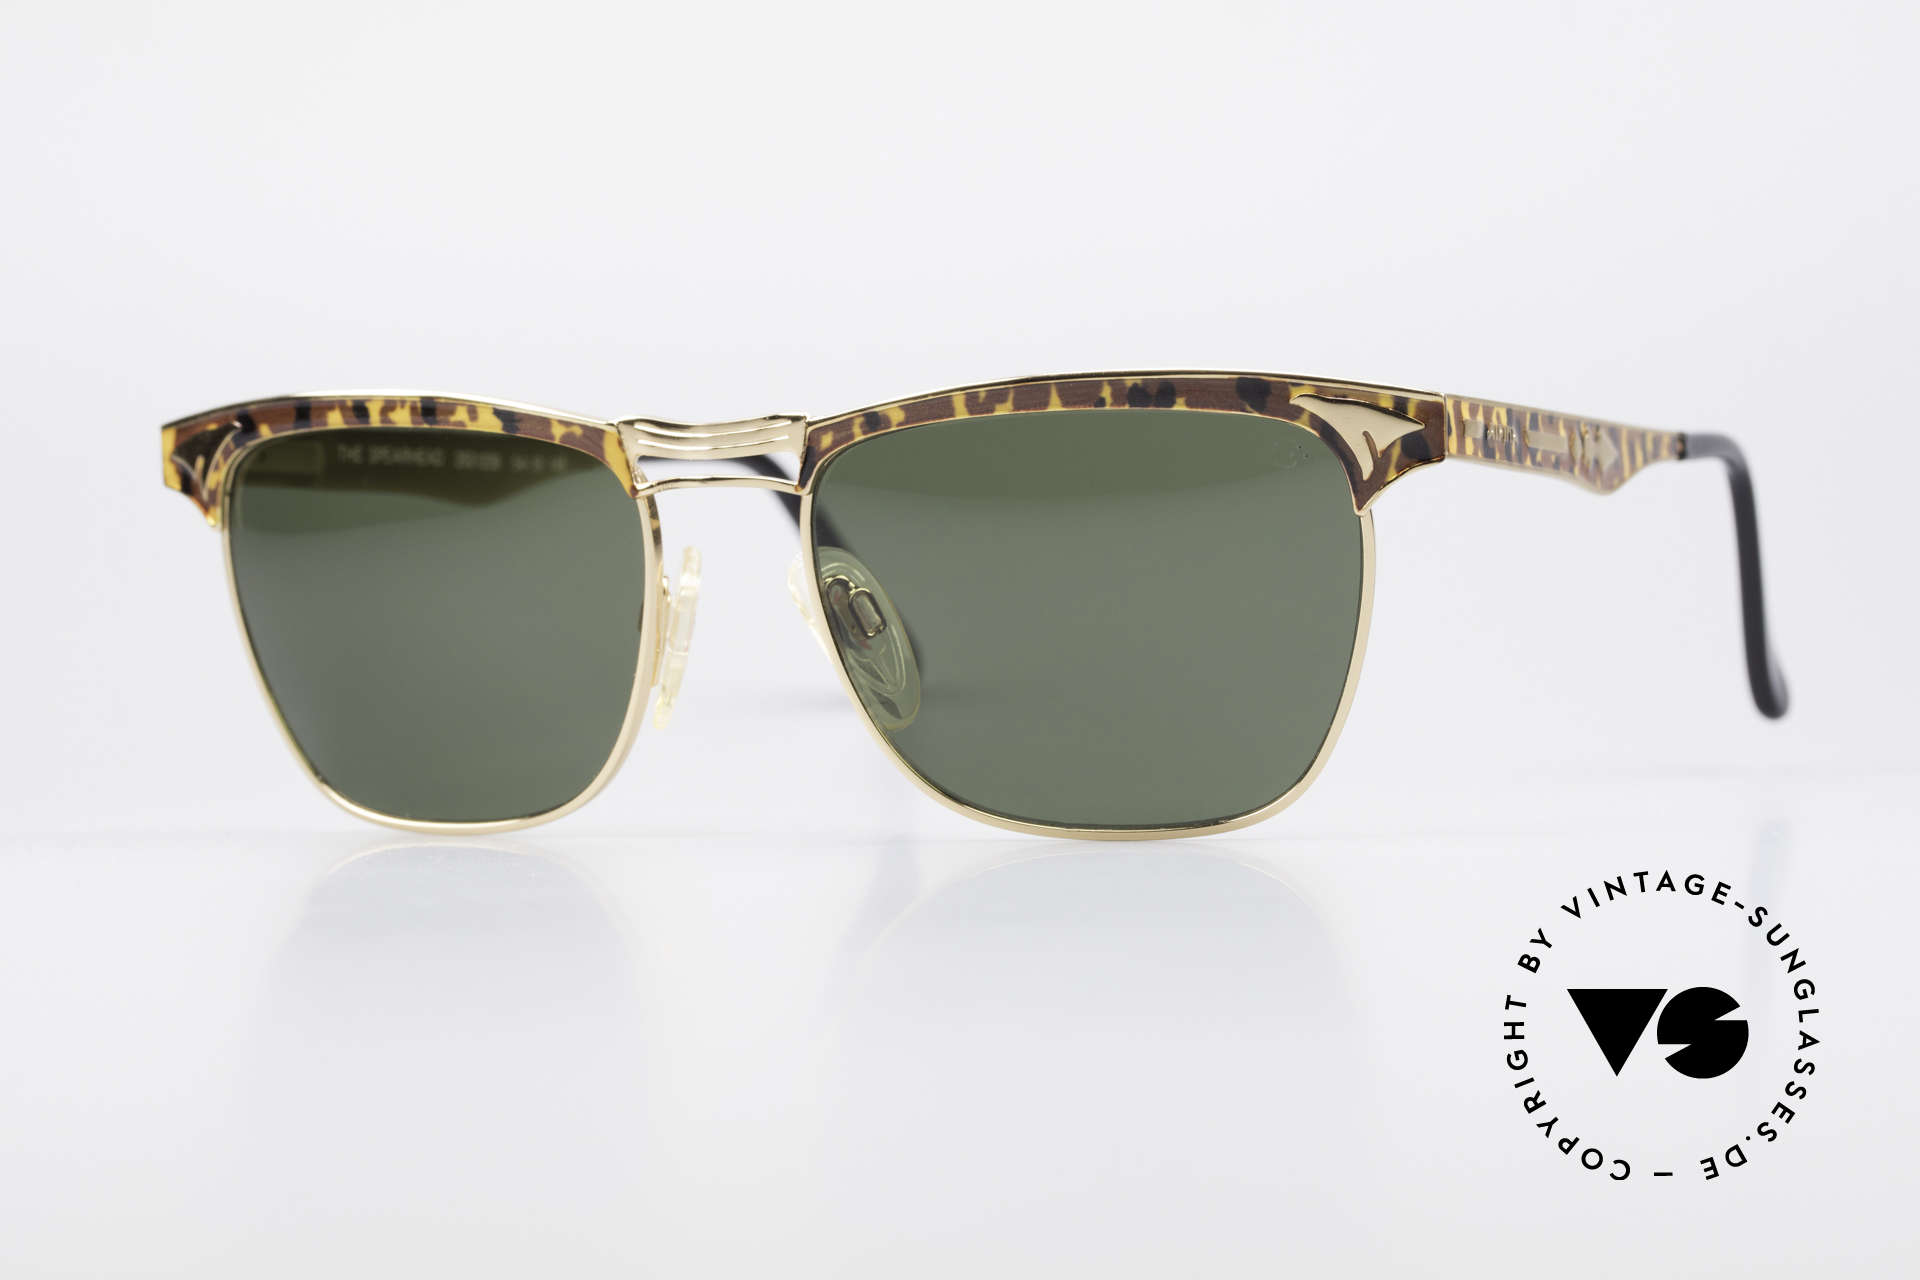 Alpina THE SPEARHEAD 90's No Retro Sunglasses, classic vintage sunglasses by Alpina from 1995, Made for Men and Women